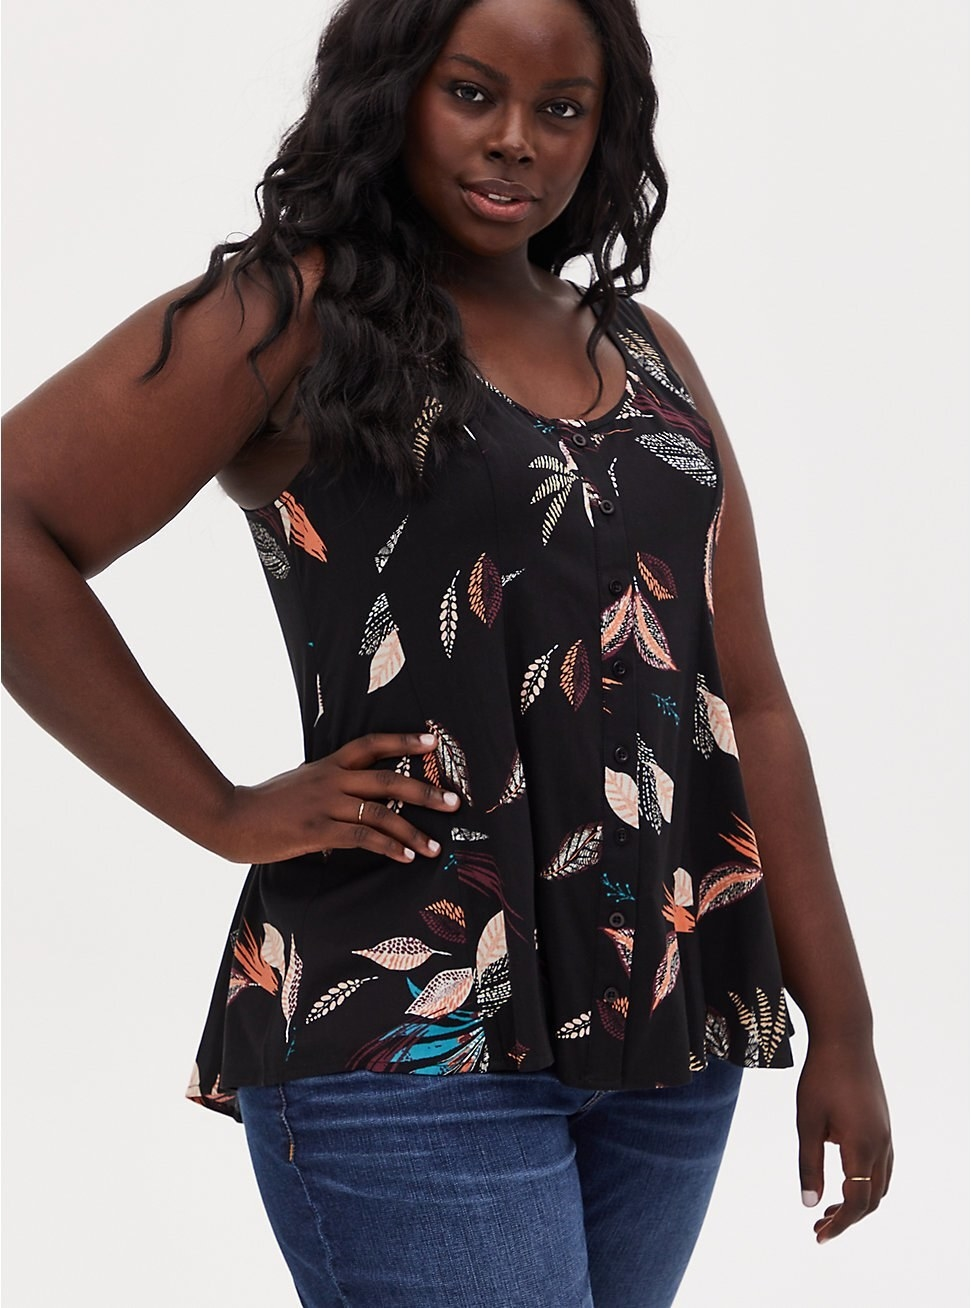 Black flowy tank with multi-colored leaf pattern and buttons down front